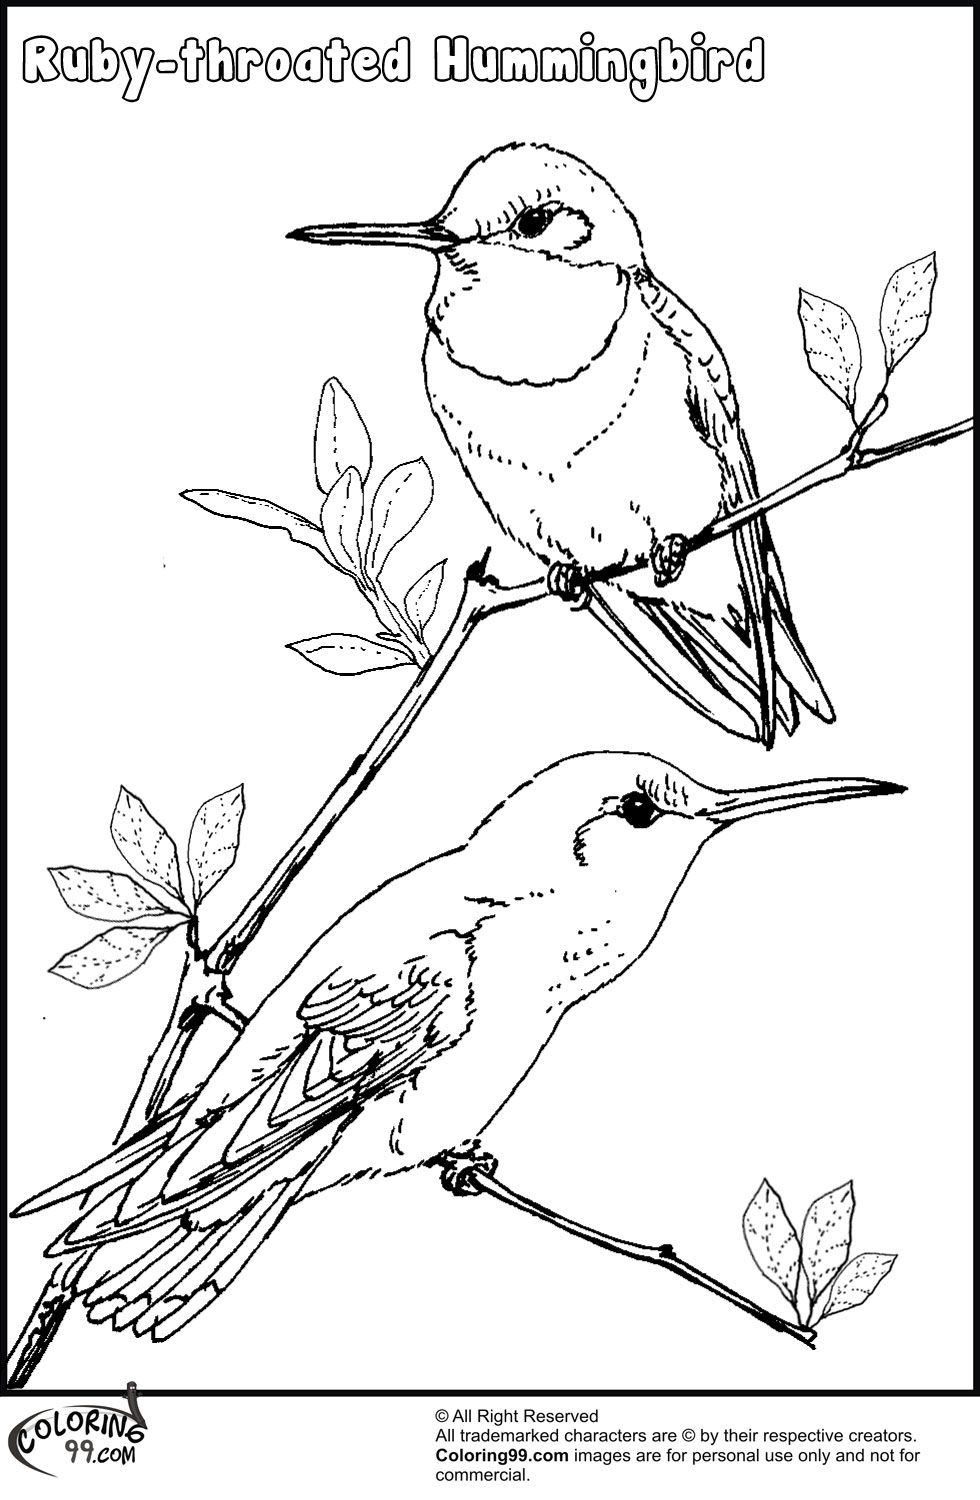 Hummingbird Coloring Pages Coloring Pages Cartoon Coloring Pages Bird Coloring Pages